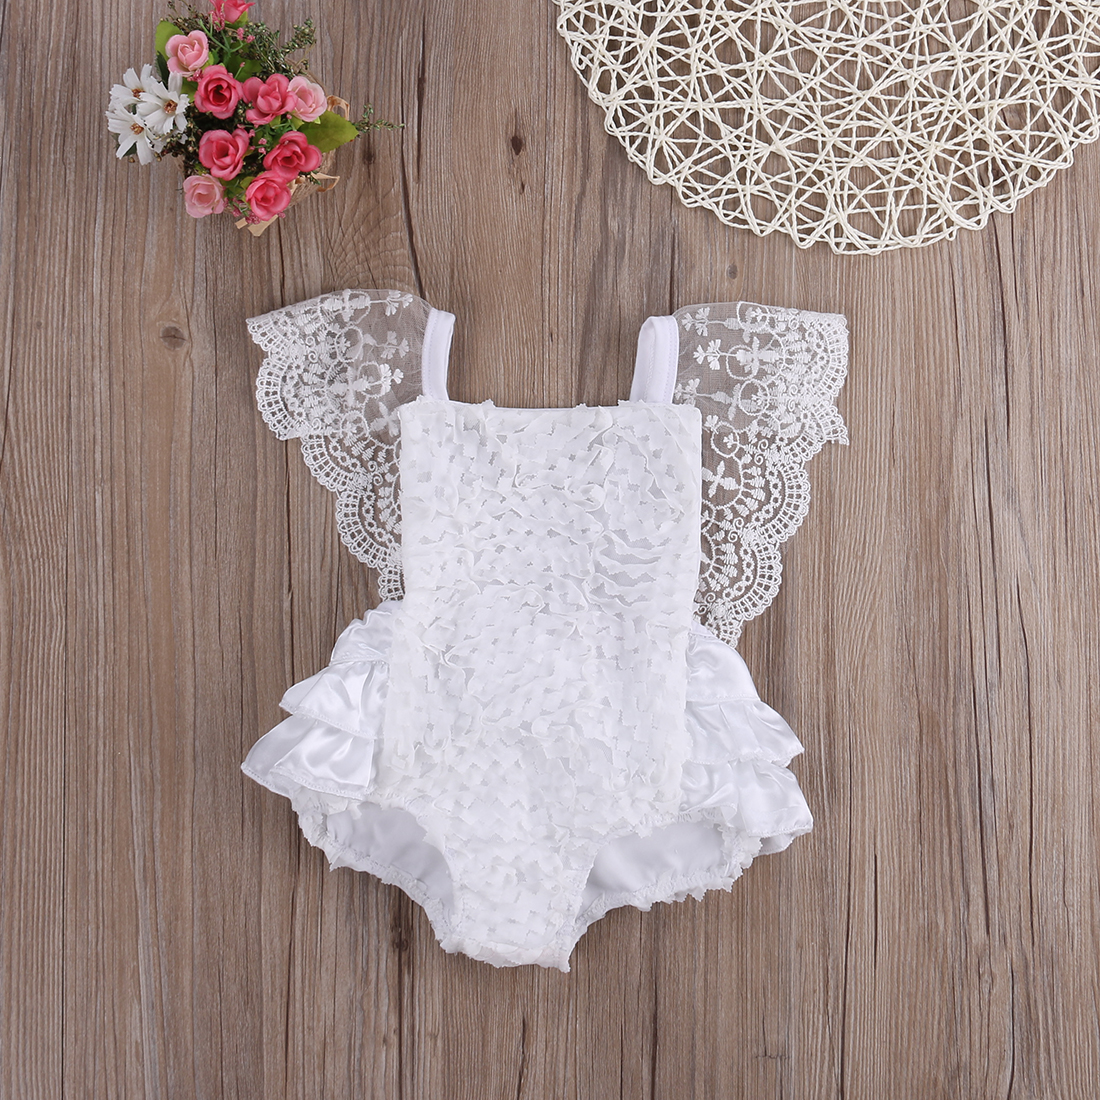 Newborn Infant Baby Girl Solid Lace Floral TUTU Romper Bodysuit Clothes Outfit D